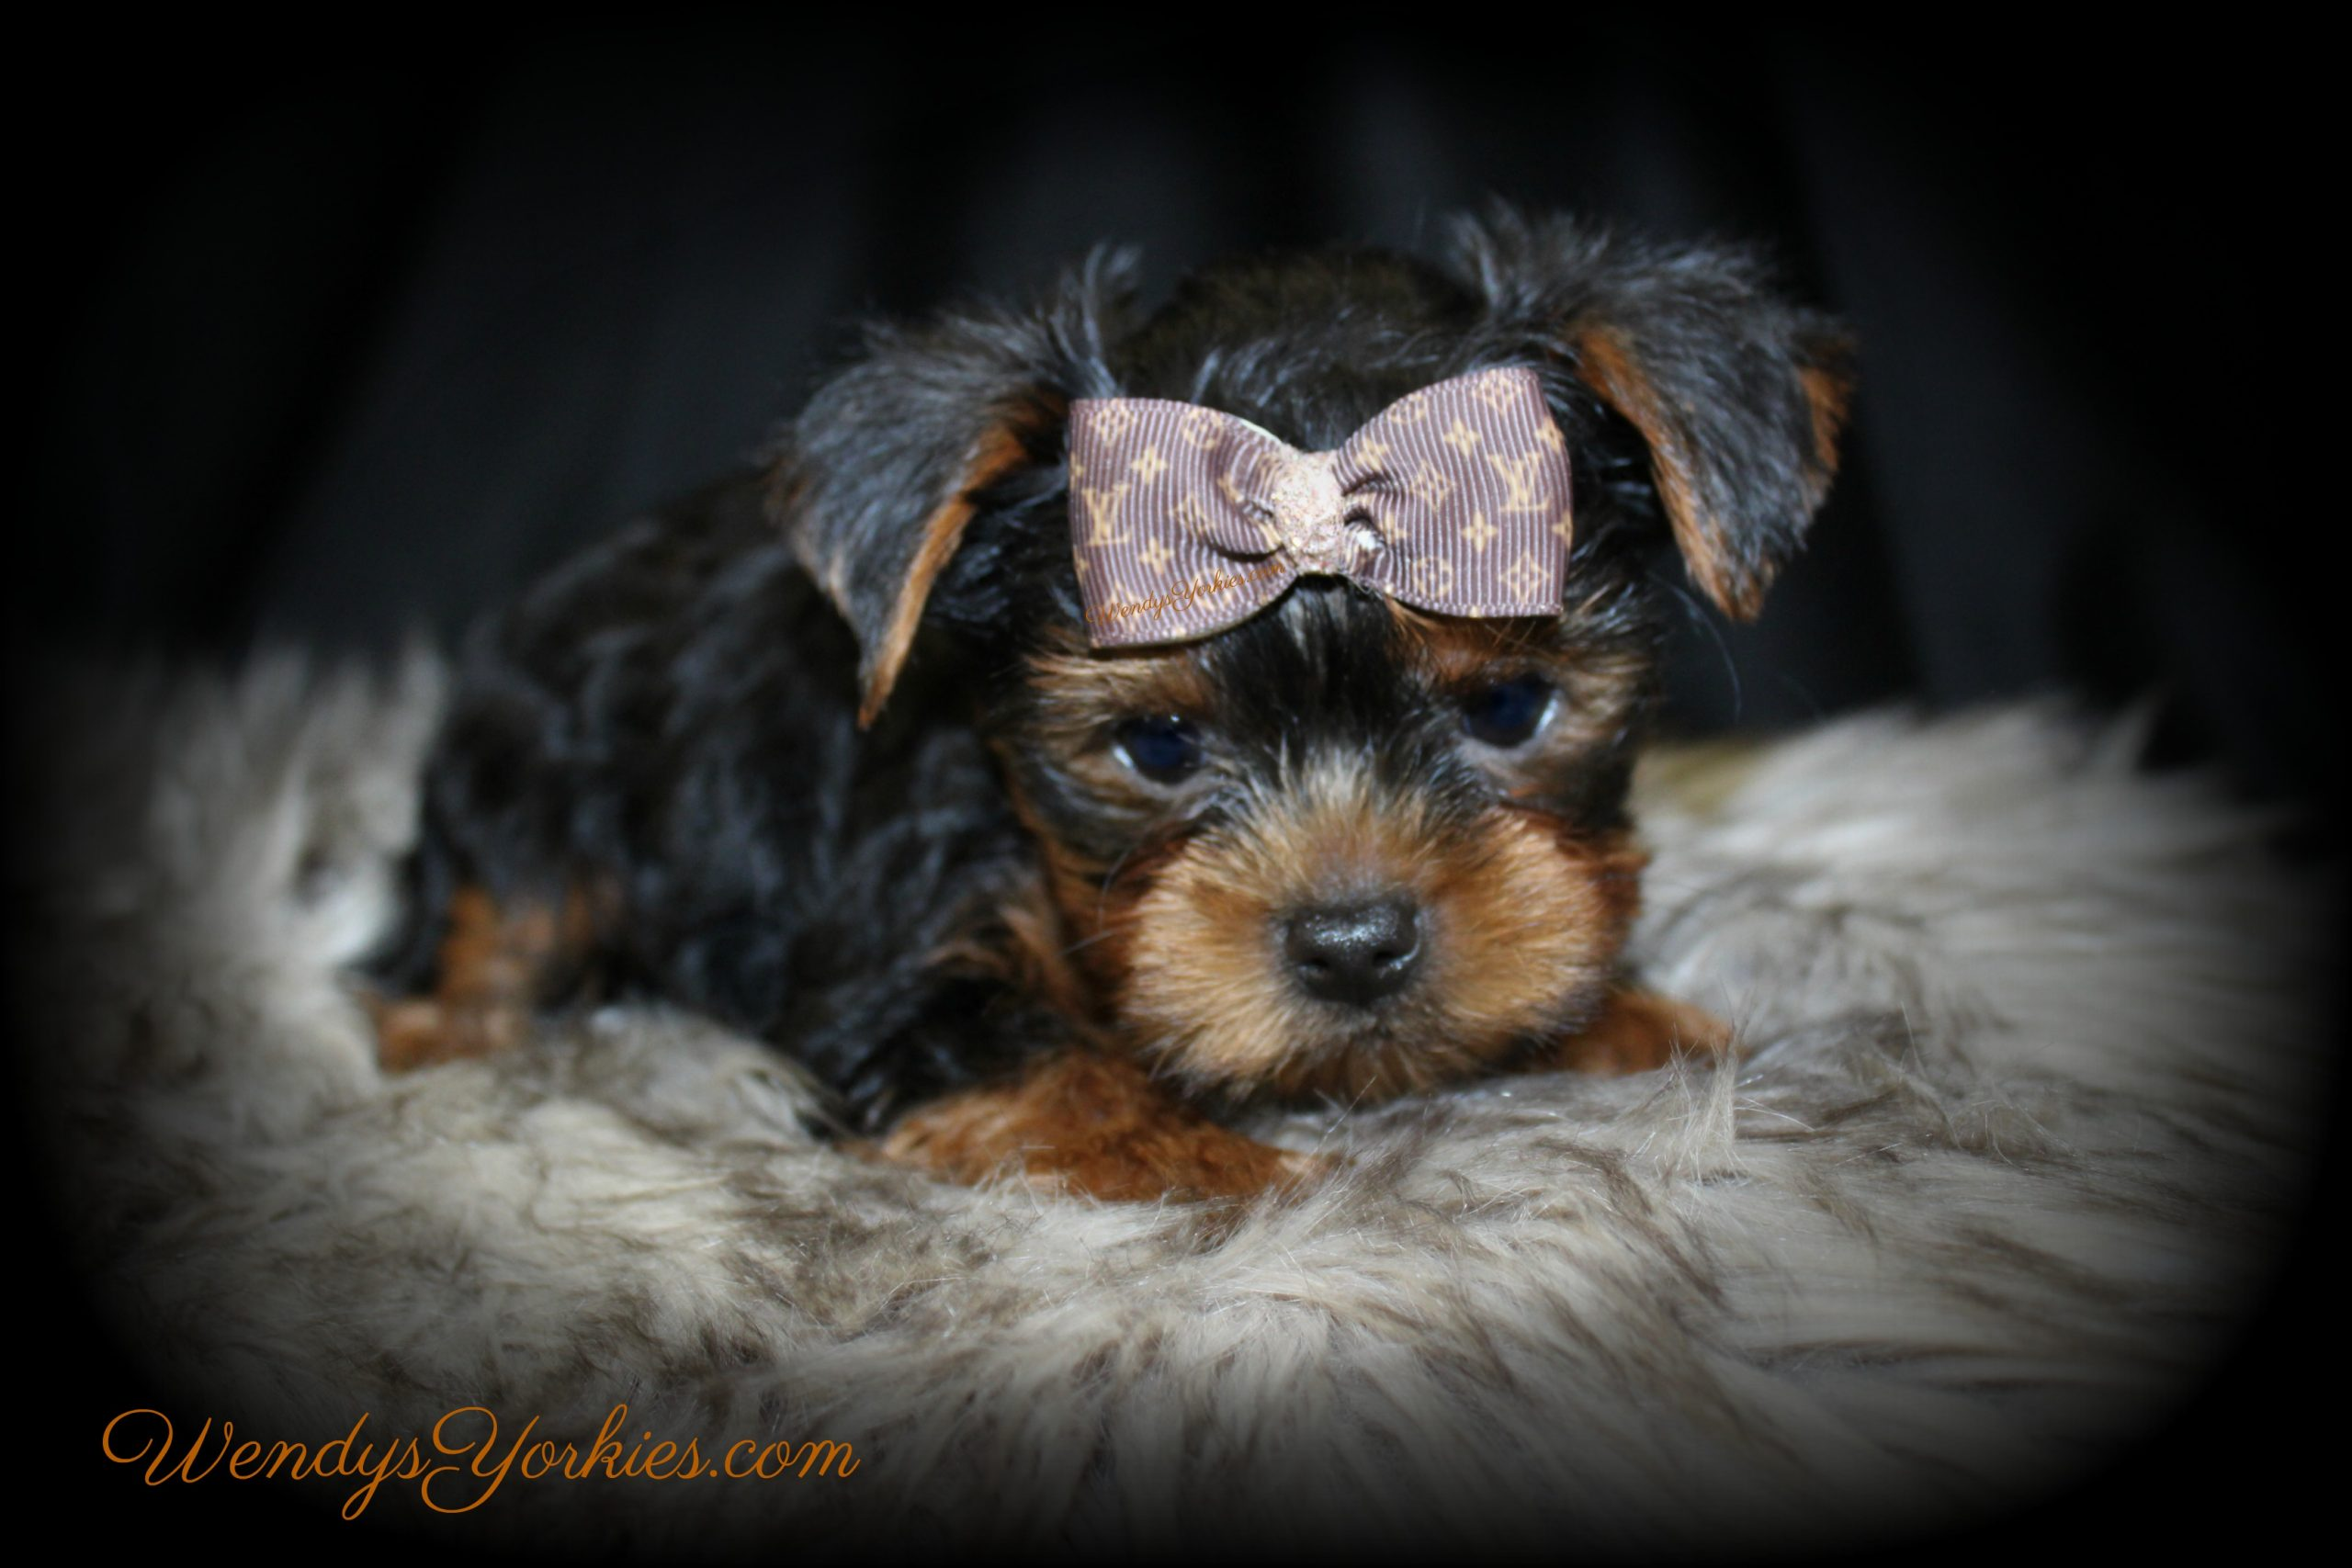 Yorkie puppy for sale in Texas, Louie, WendysYorkies.com